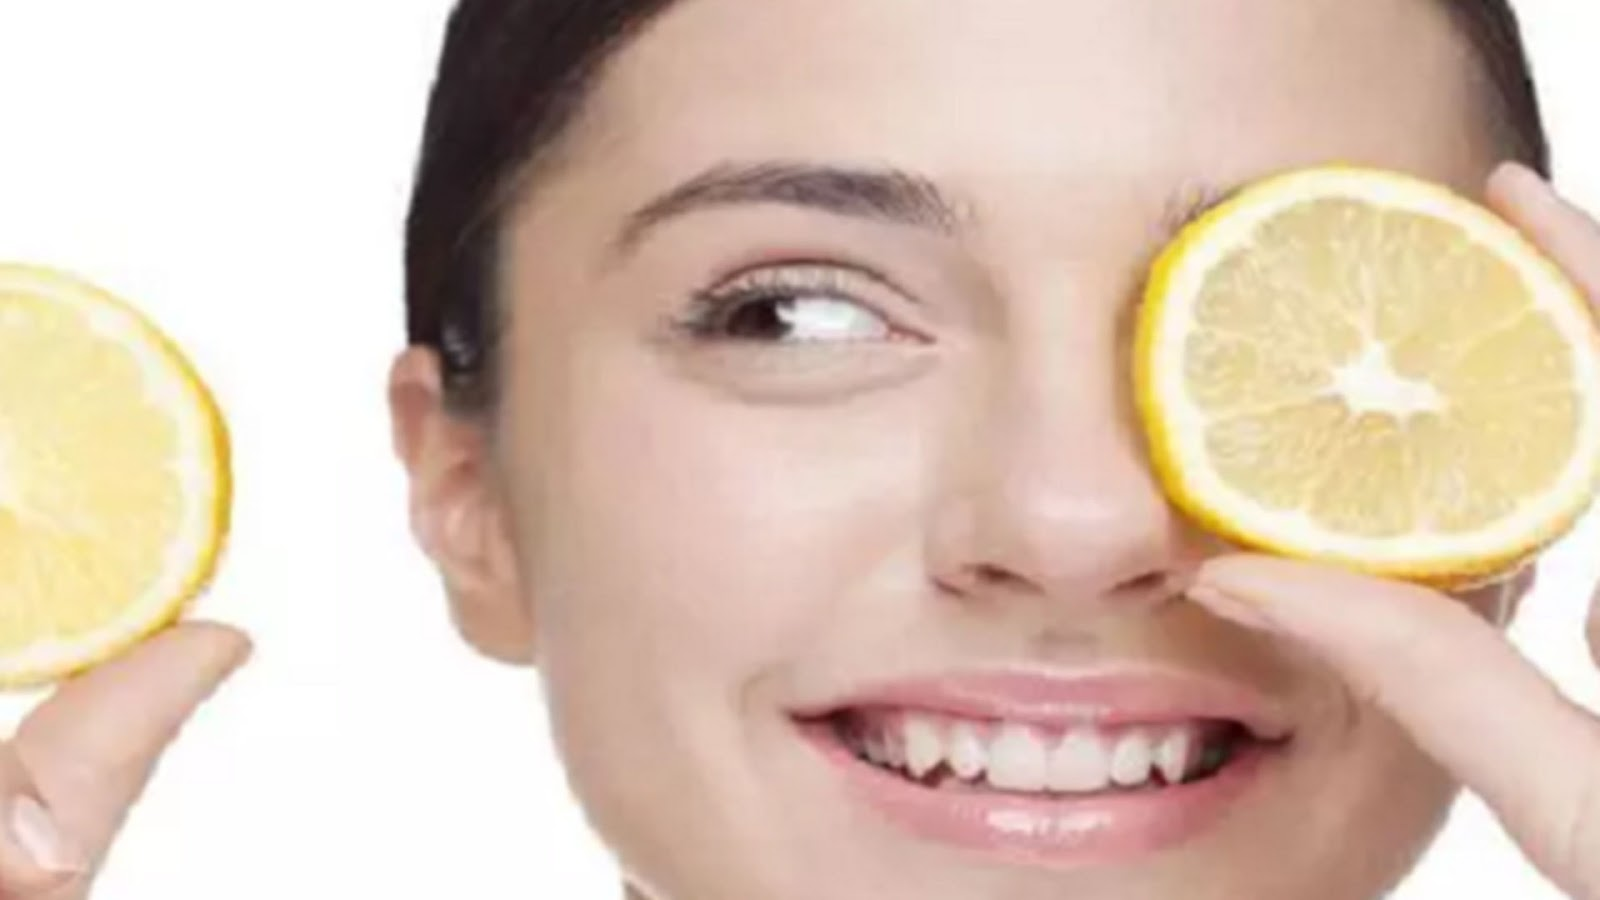 acne, acne treatment, acne products, skin care, treatment, creams, solutions,  pimples